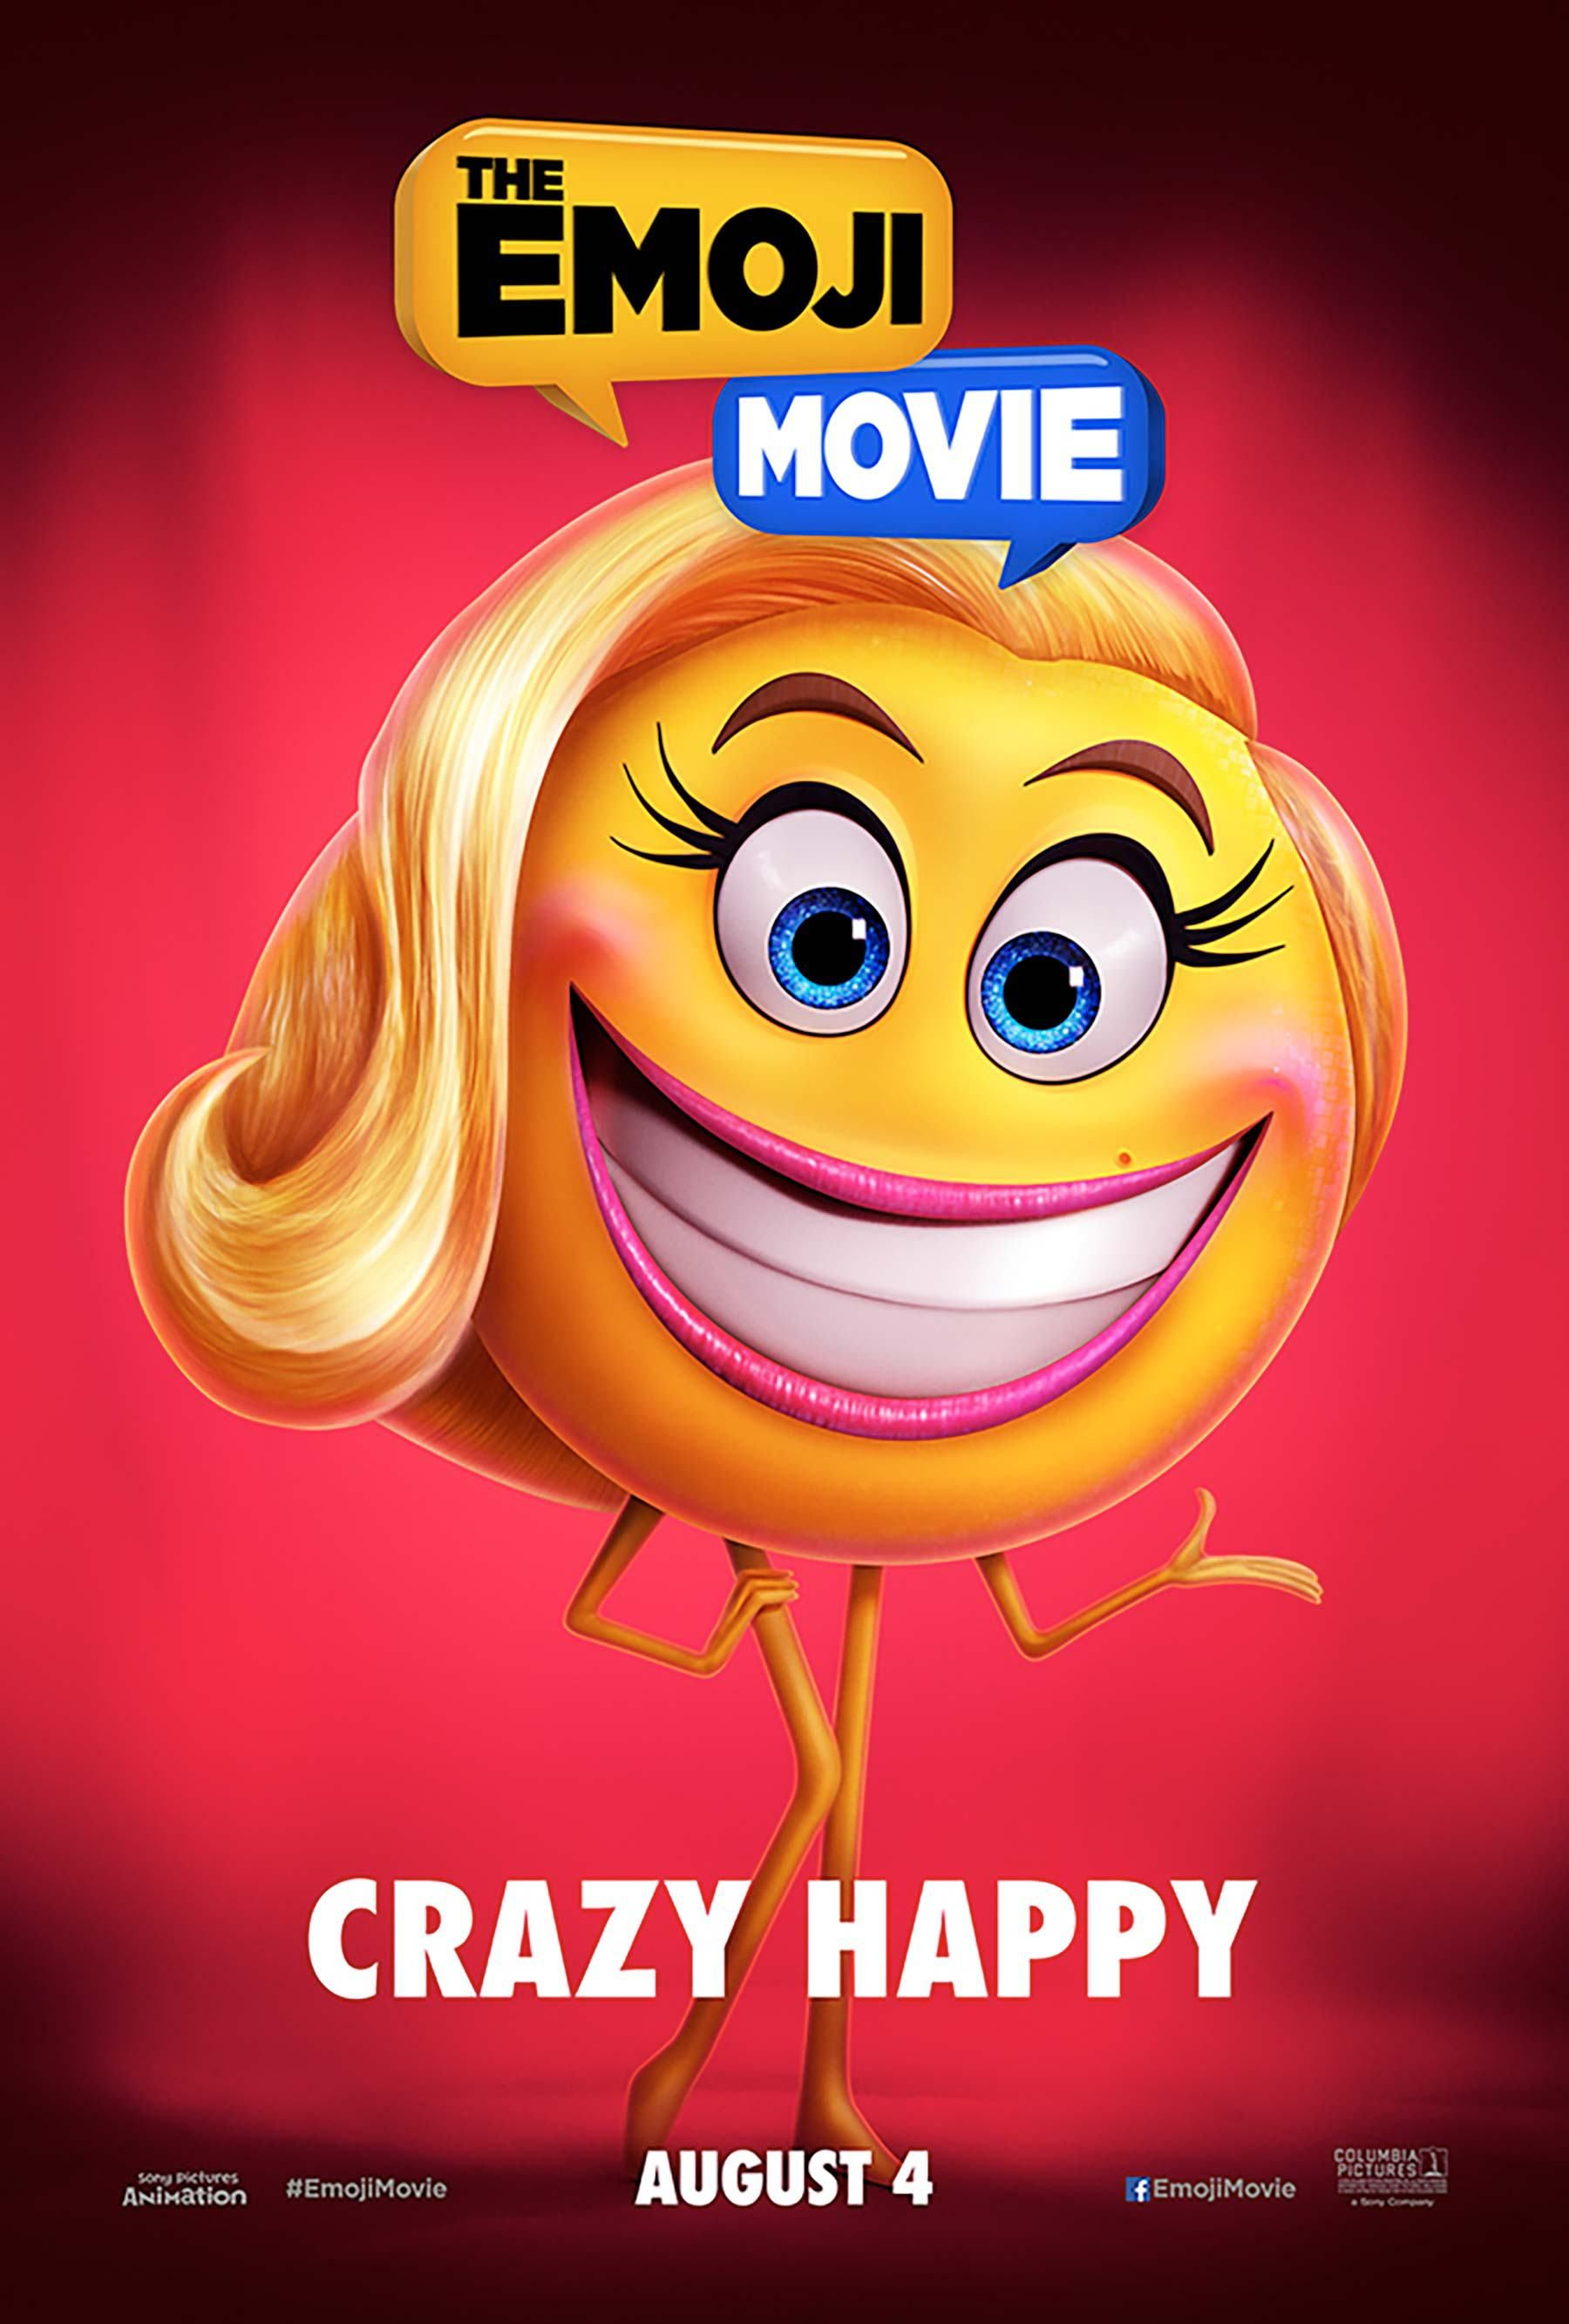 Check Out The First Teaser For The Emoji Movie With Images